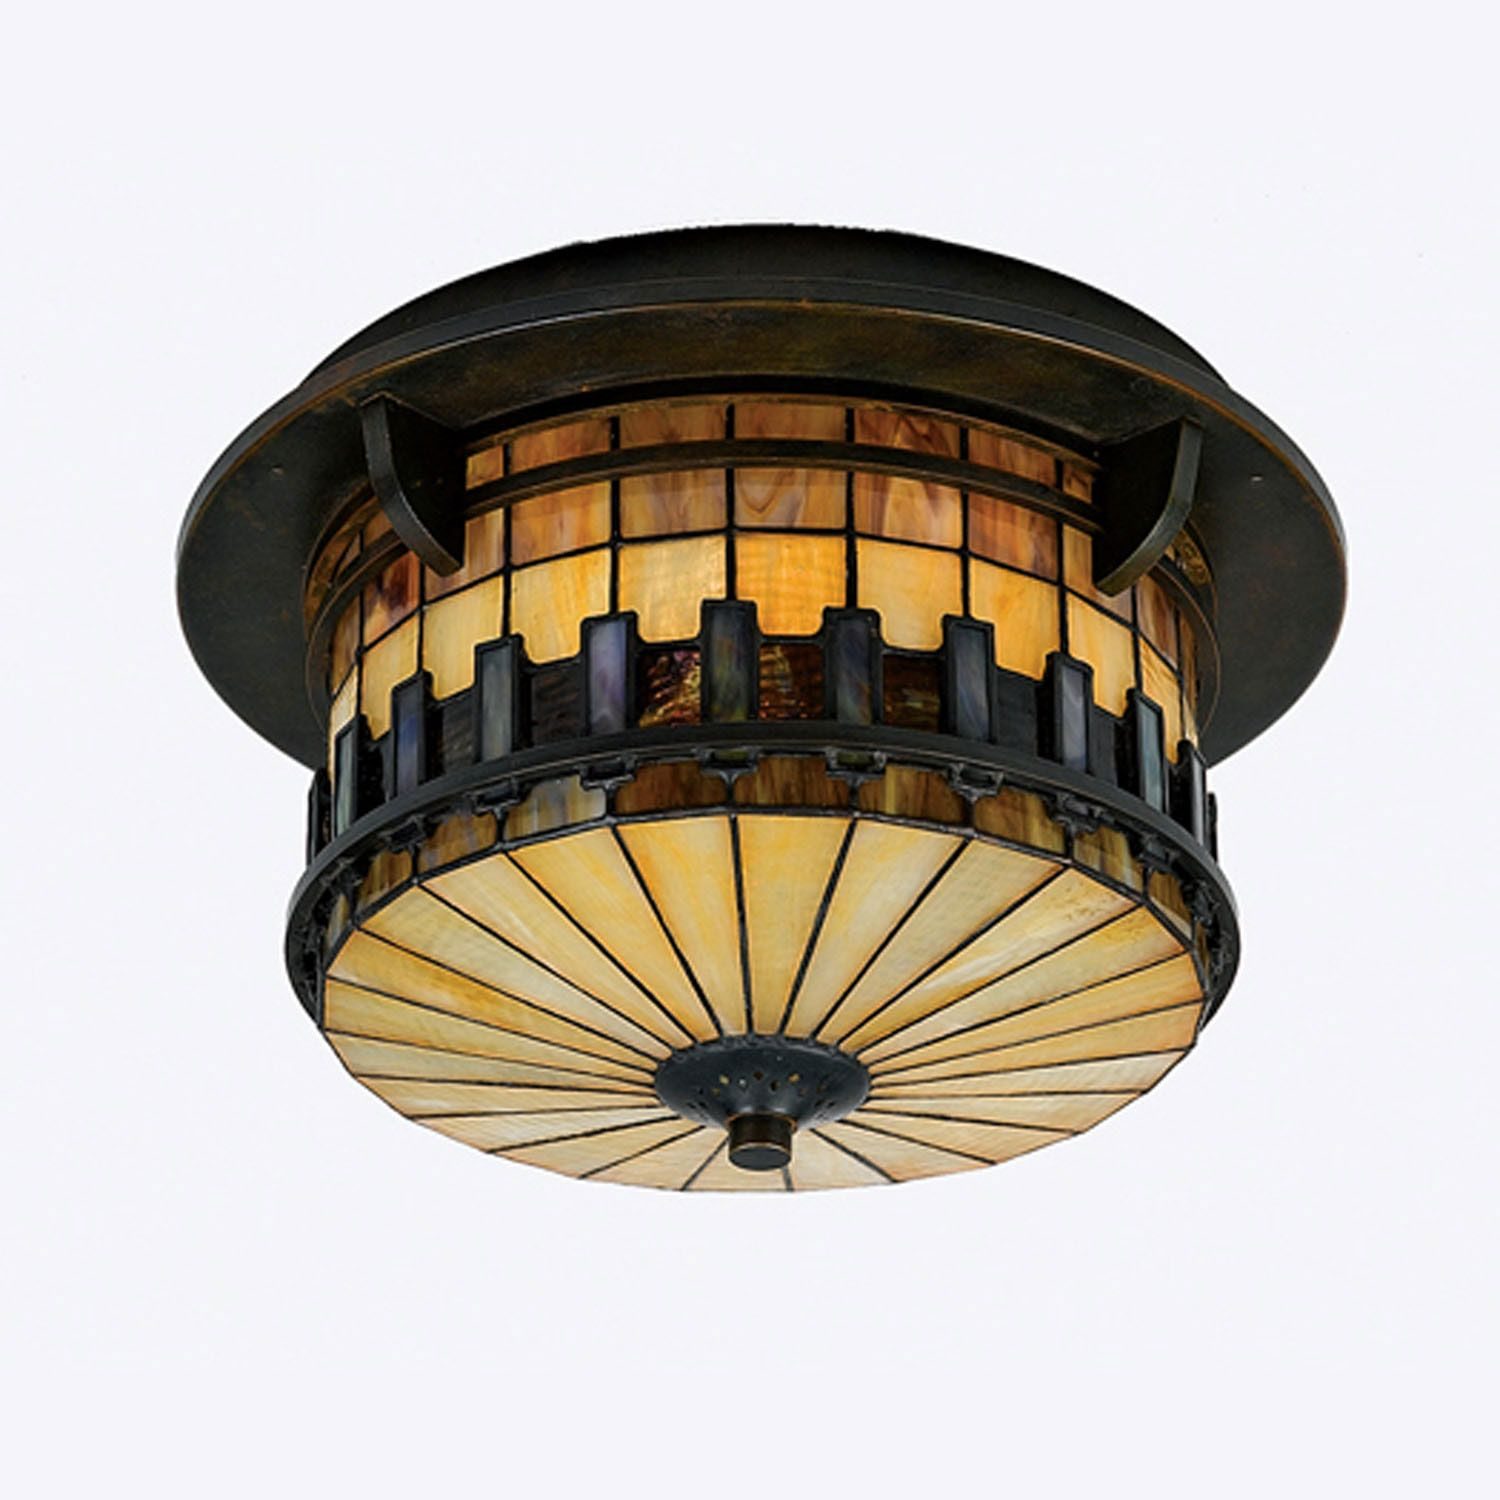 Endacott Lighting Outdoor Ceiling Lights Ceiling Lights Quoizel